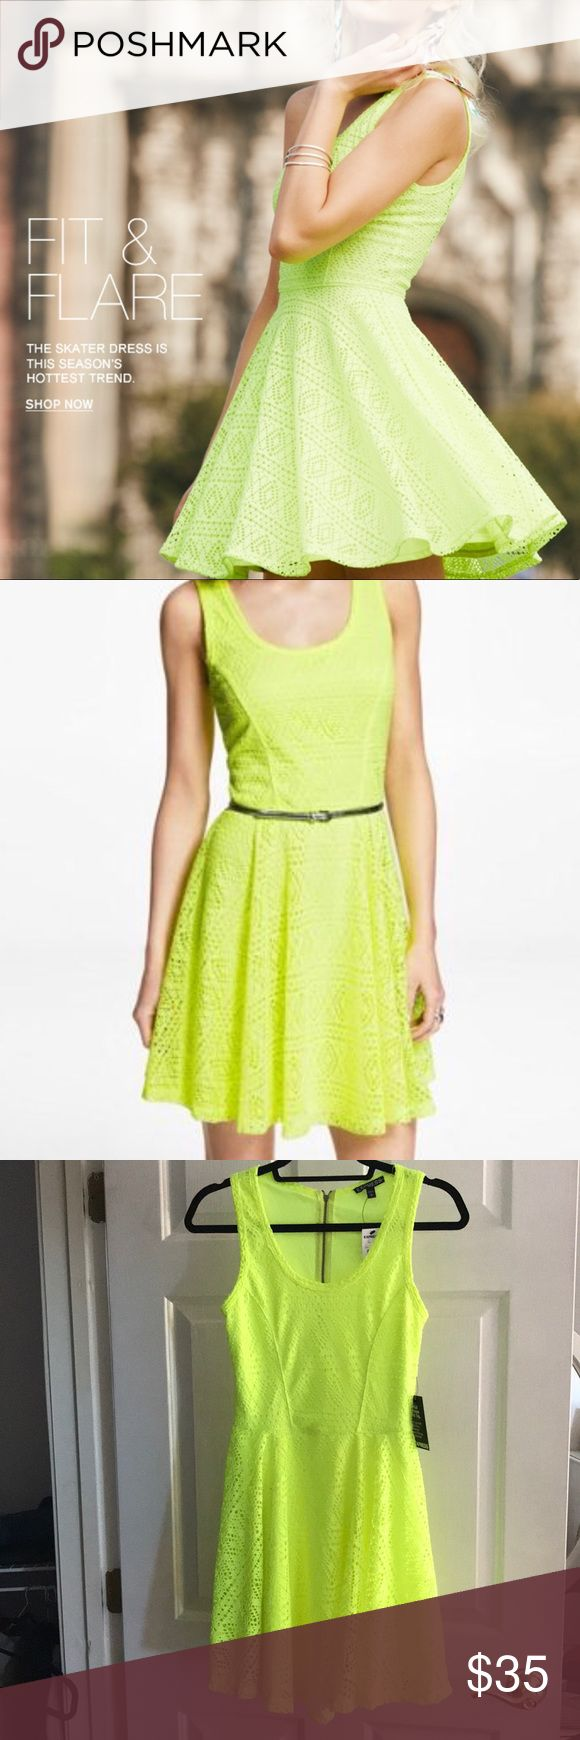 NWT Express Neon Skater Dress NEW WITH ALL TAGS! Express neon yellow geometric lace skater skirt. Super cute color and shape! Has a racer back with zipper. Express Dresses Mini